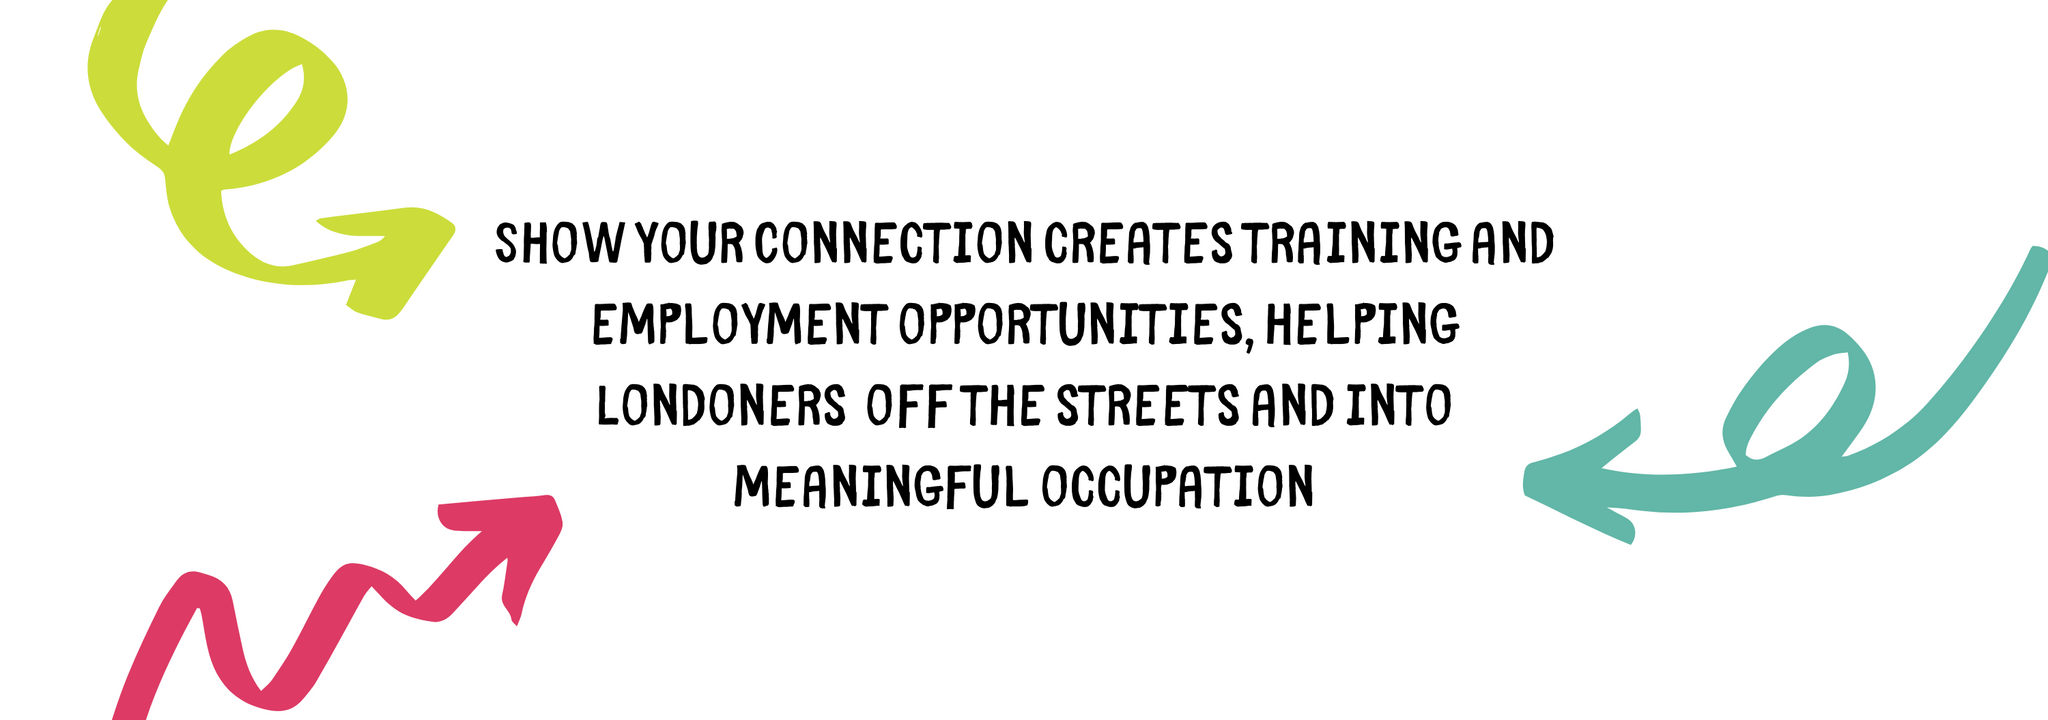 Show Your Connection creates training and employment opportunities, helping Londoners off the streets and into meaningful occupation